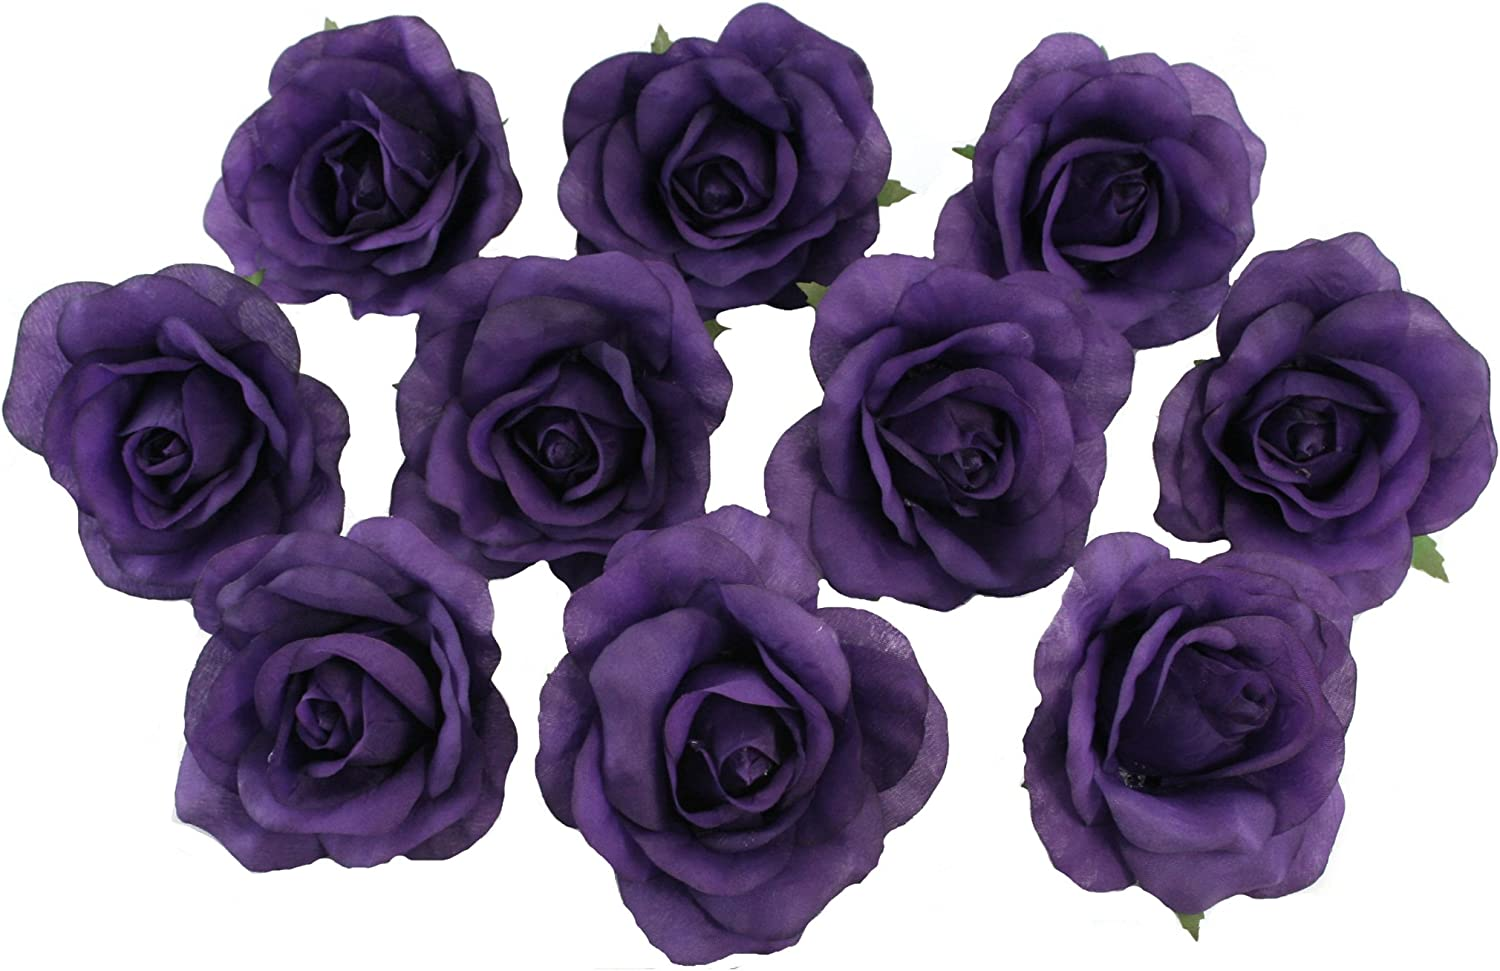 TheBridesBouquet 10 Purple Rose Heads Silk Flower Wedding/Reception Table Decorations (Large)